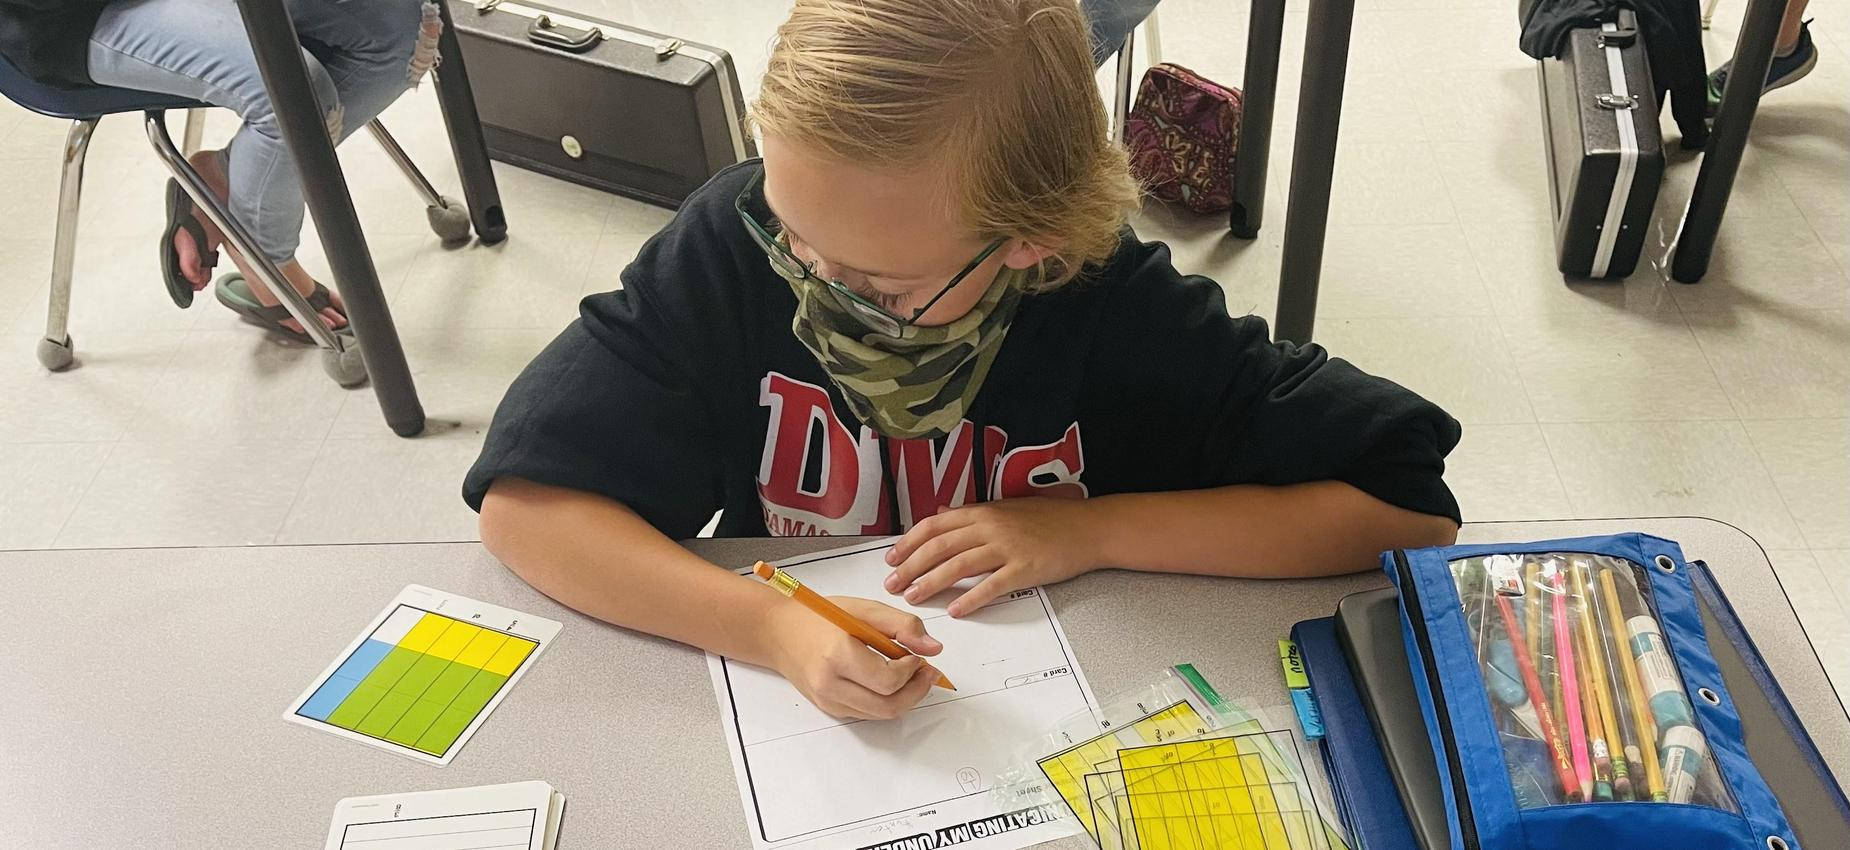 A student works math problems in a classroom.